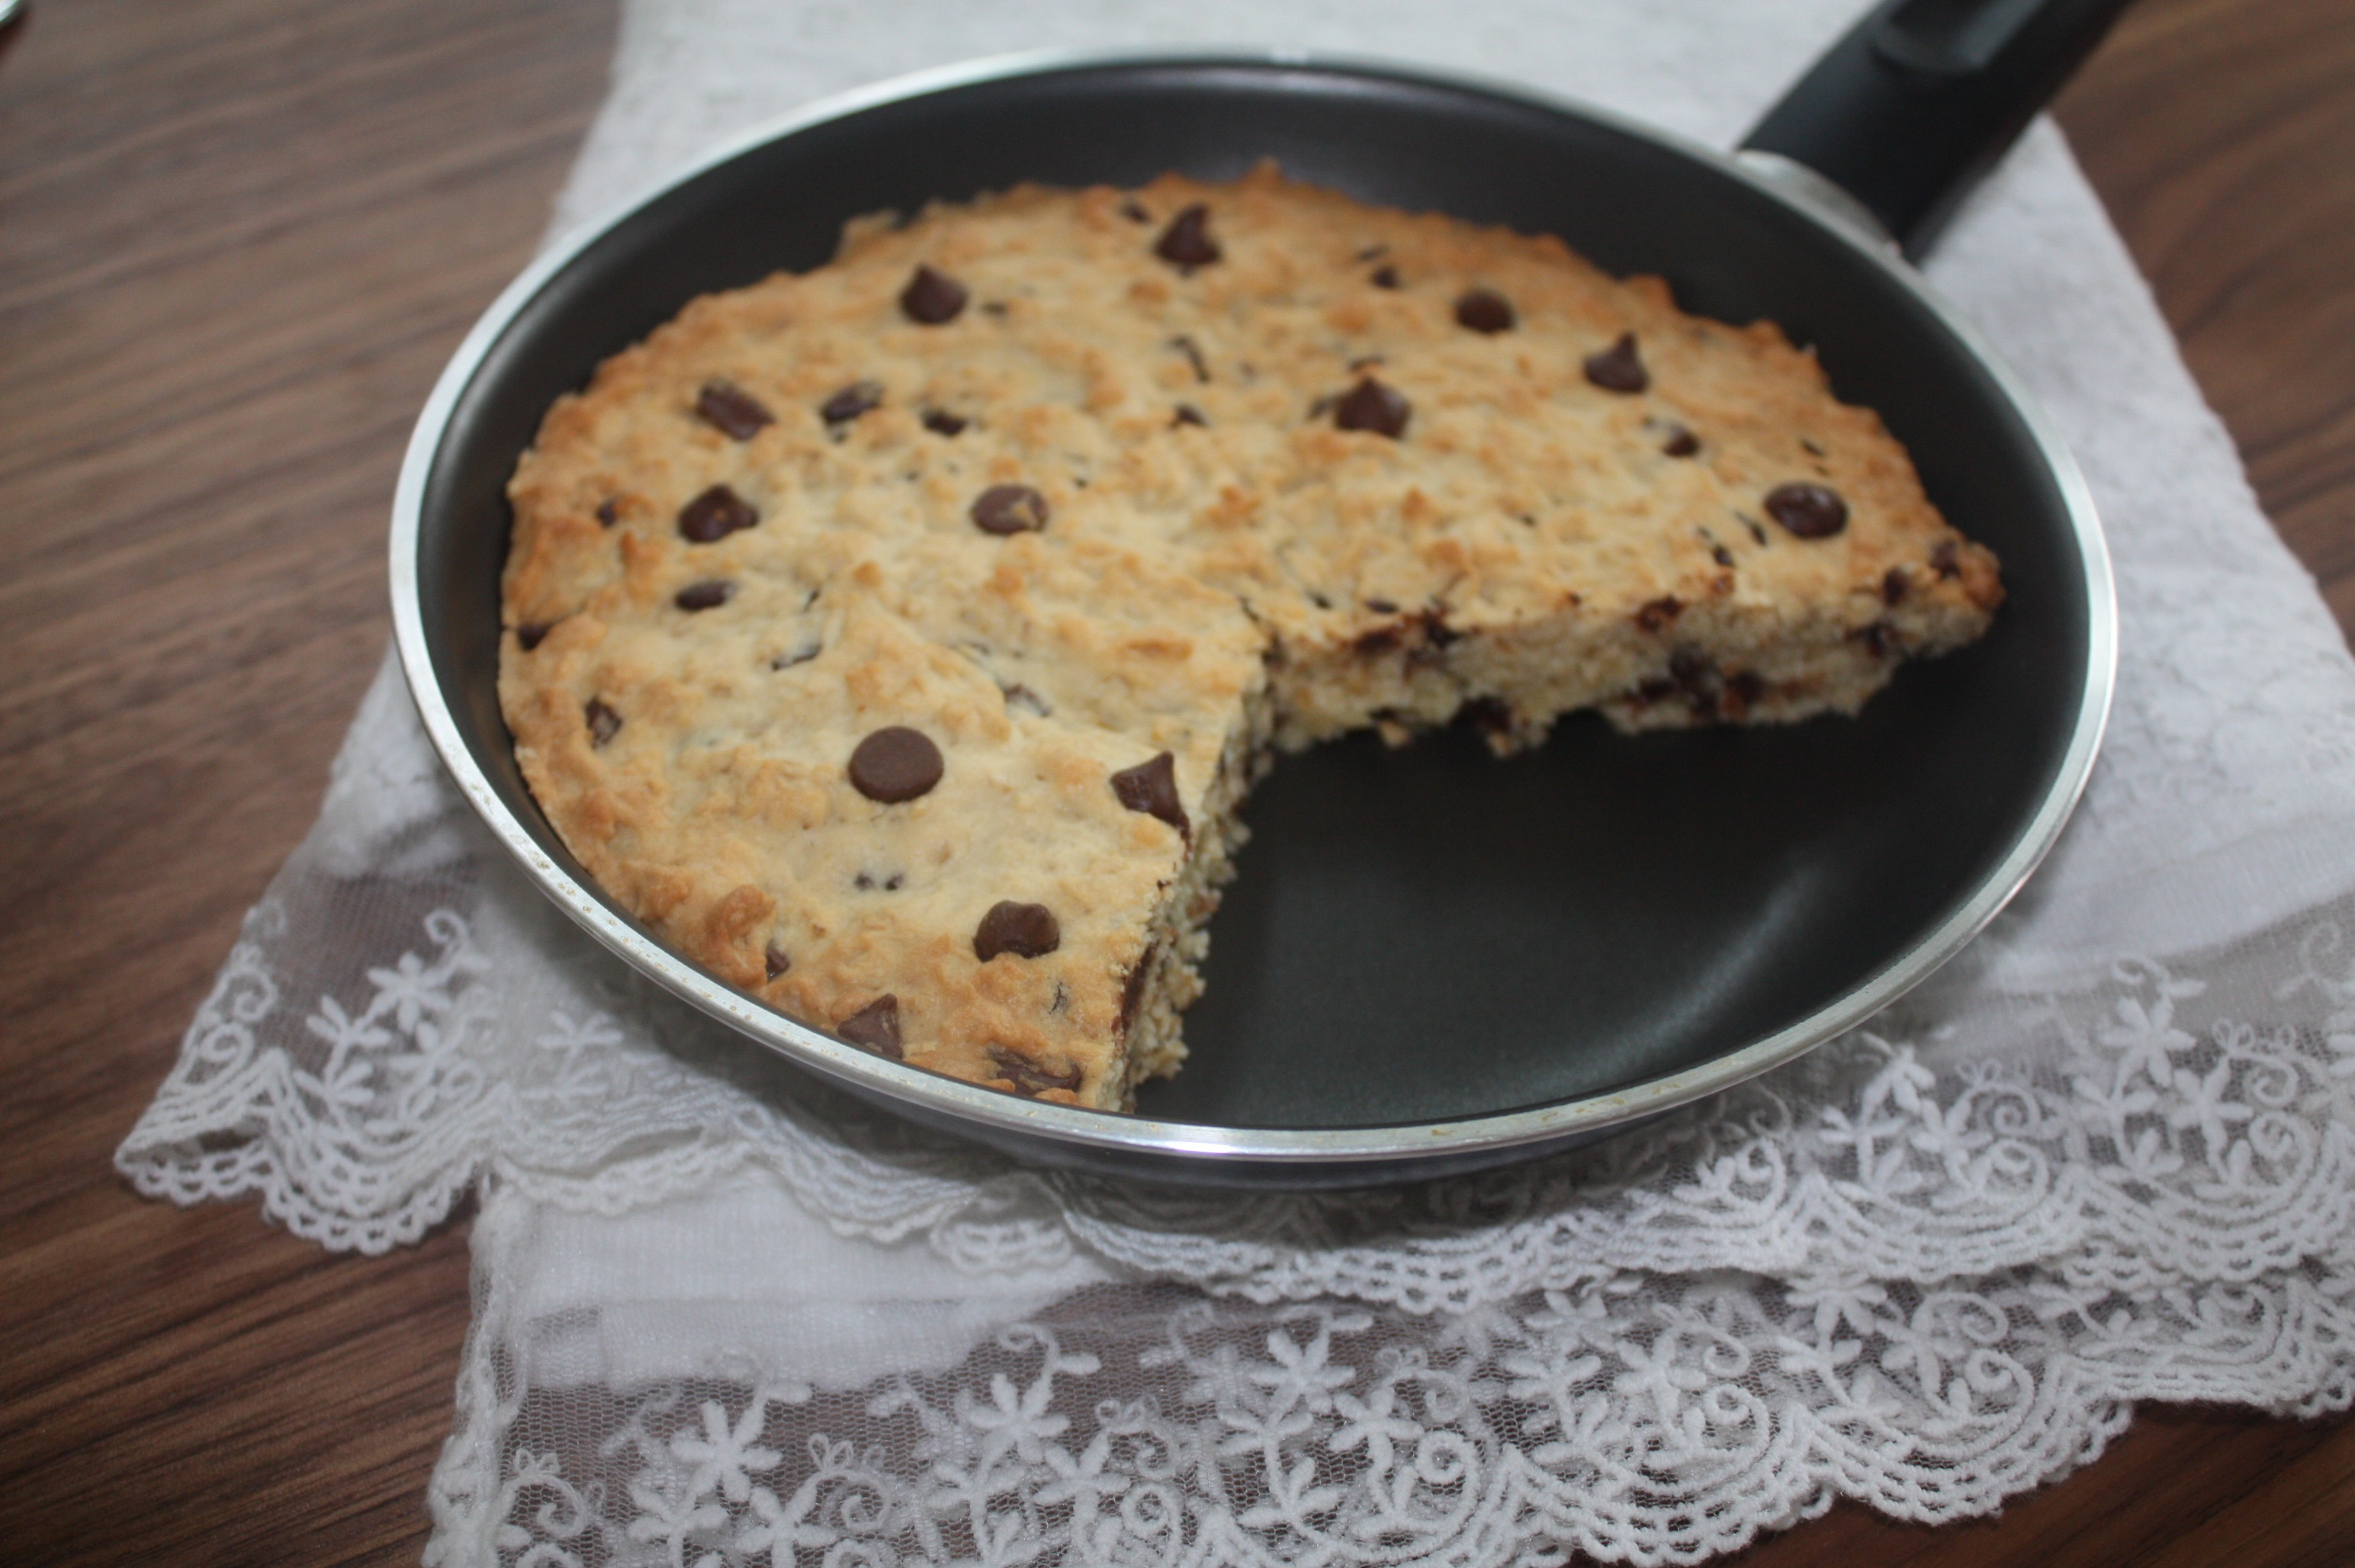 Vegan Skillet Chocolate Chip Cookie